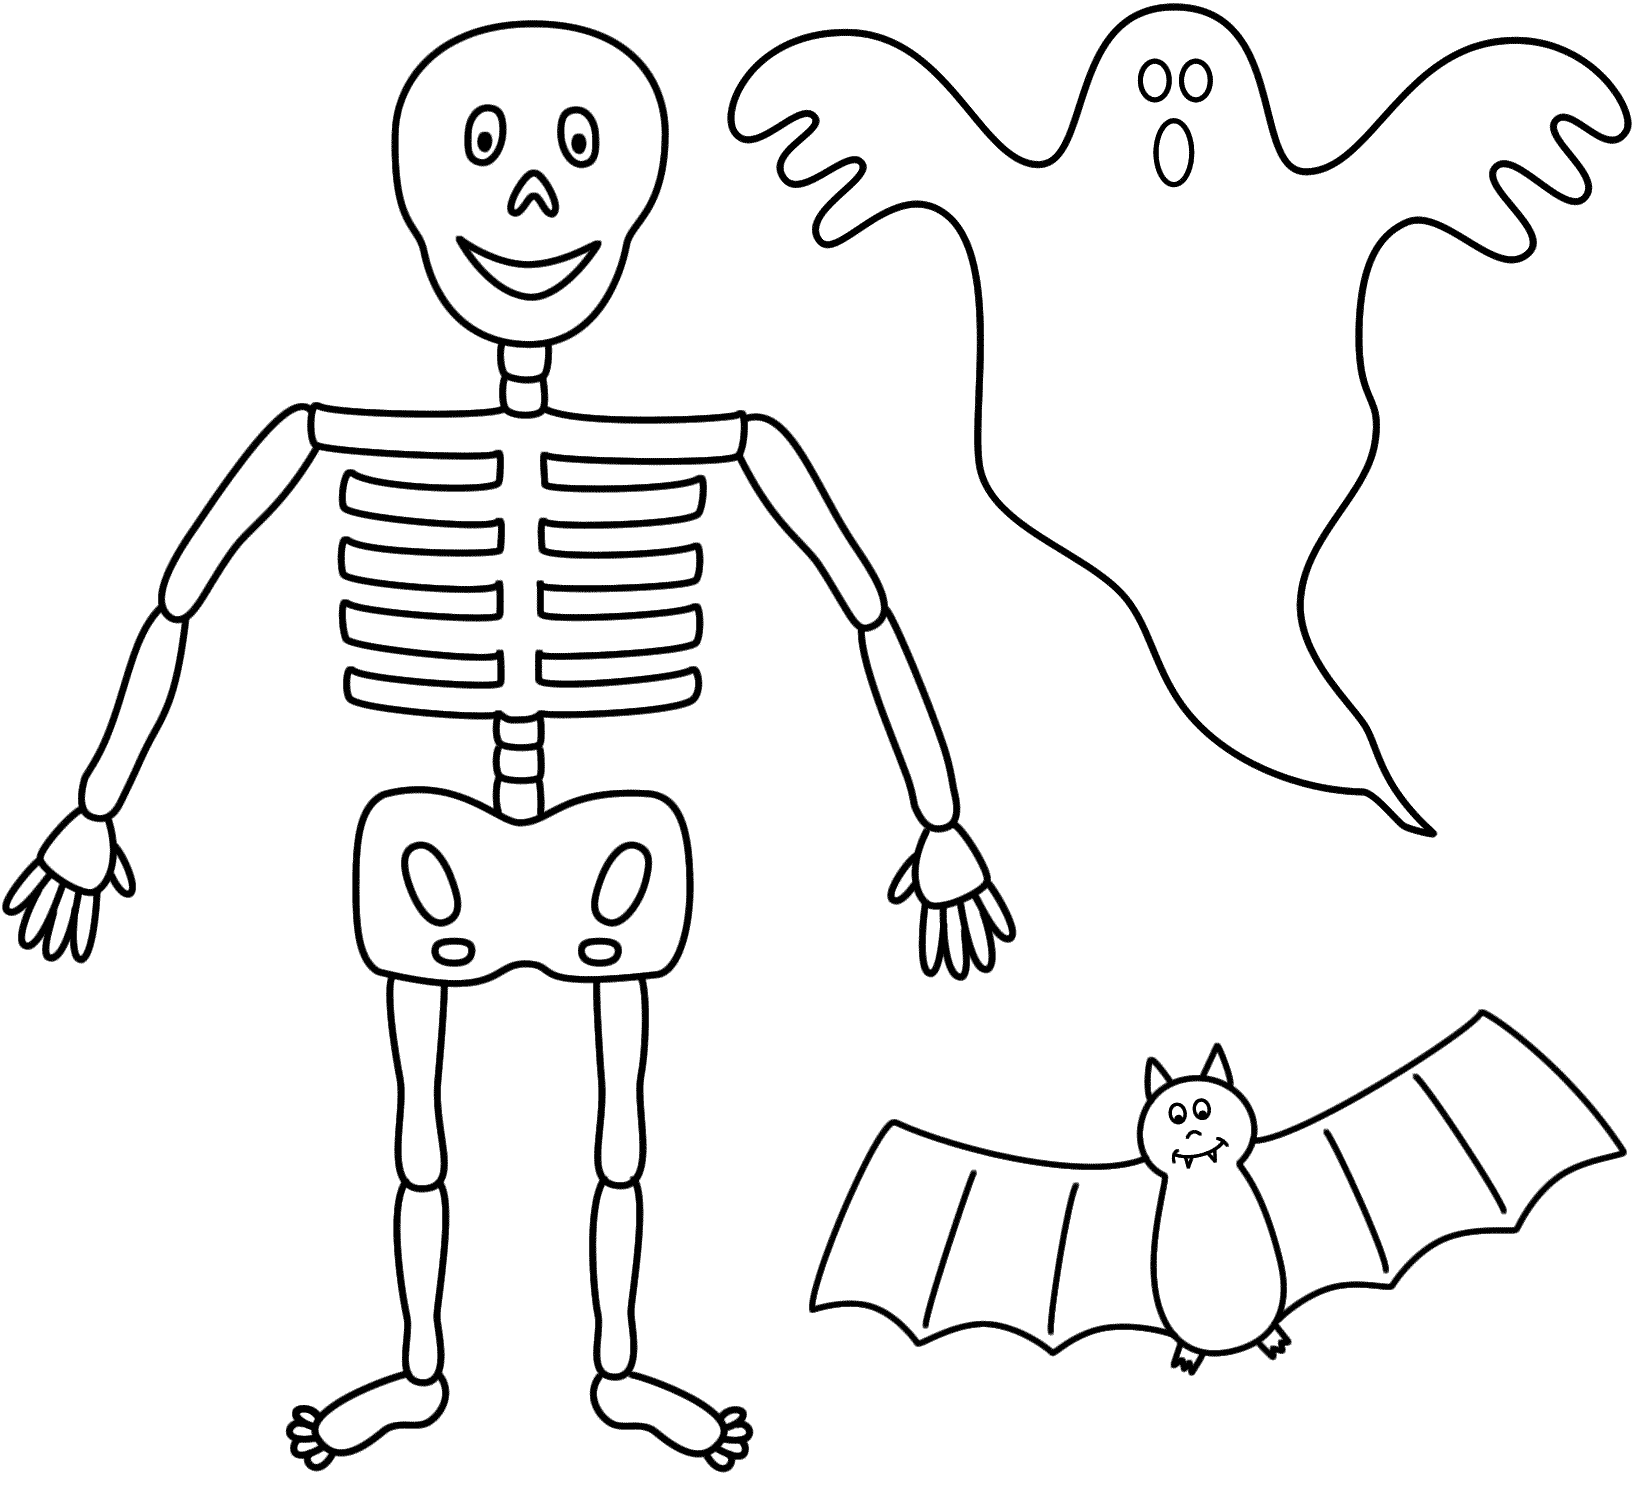 Printable Skeleton Template Cut Out